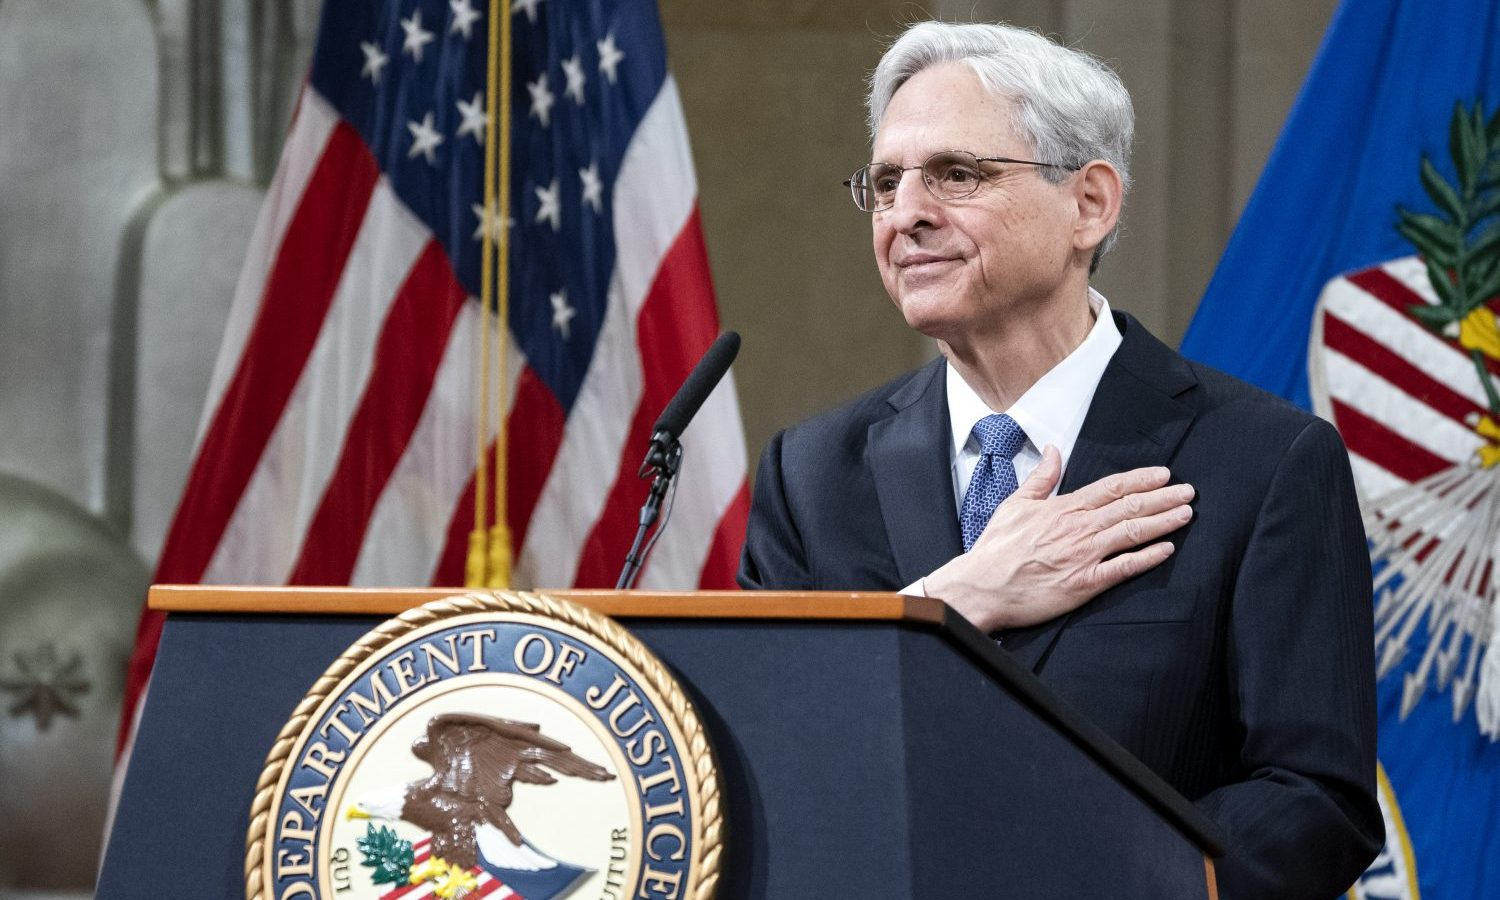 Merrick Garland Offers Conservative Argument For Federal Decriminalization Of Marijuana